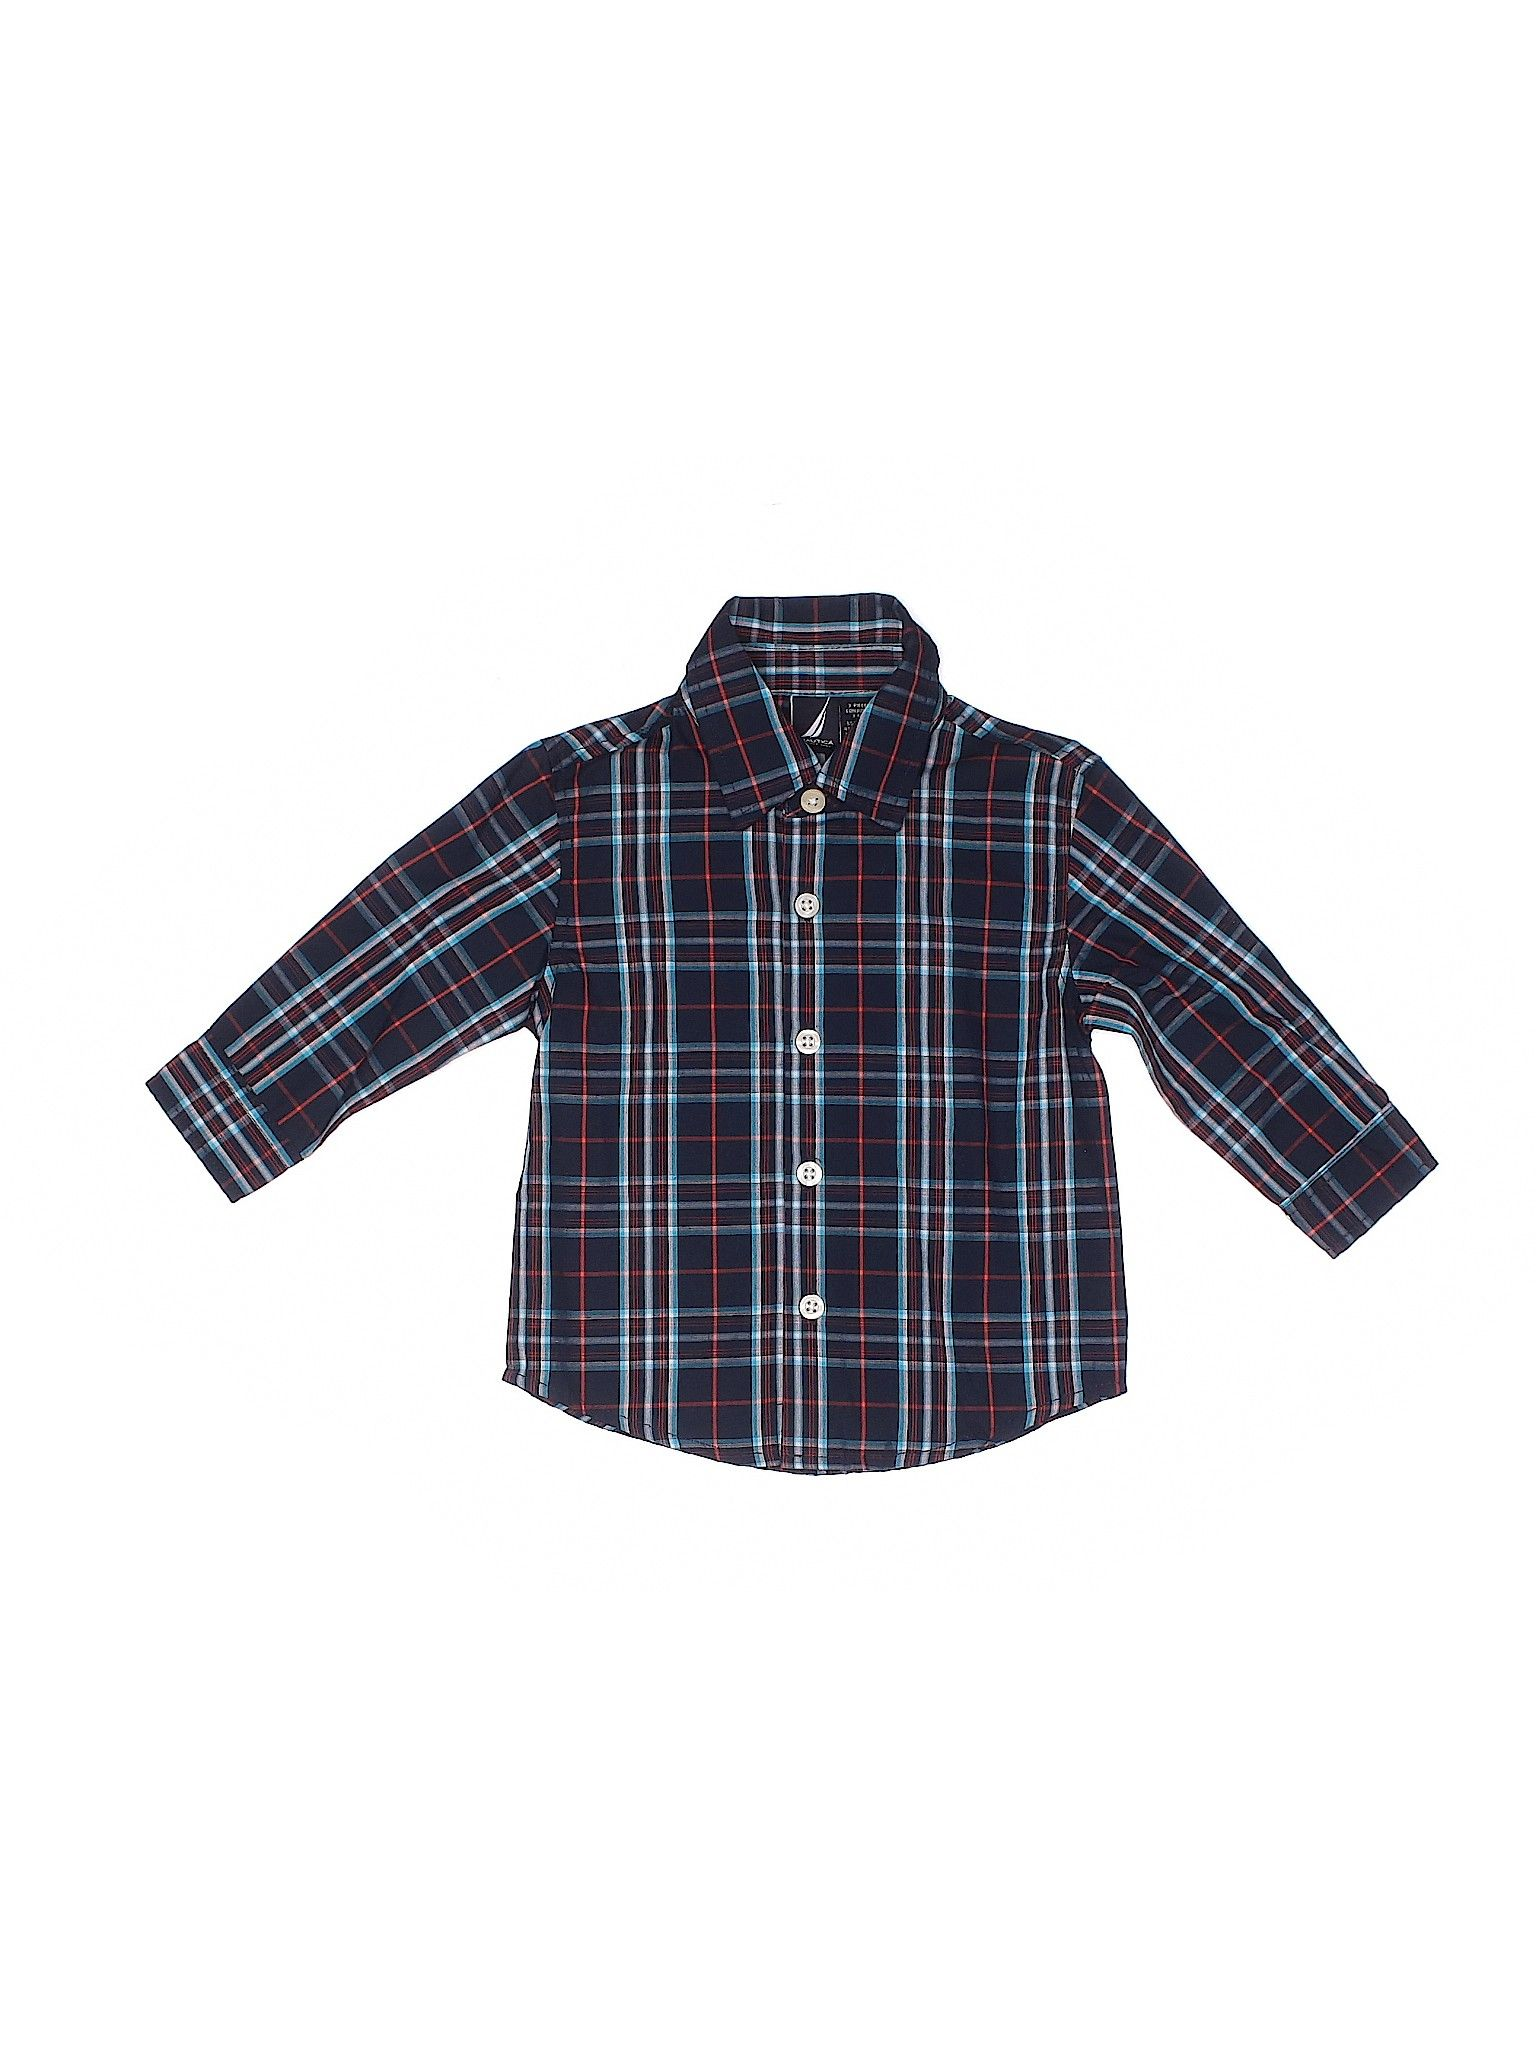 Boys Long Sleeve Cotton Plaid Button Down Shirts Tops